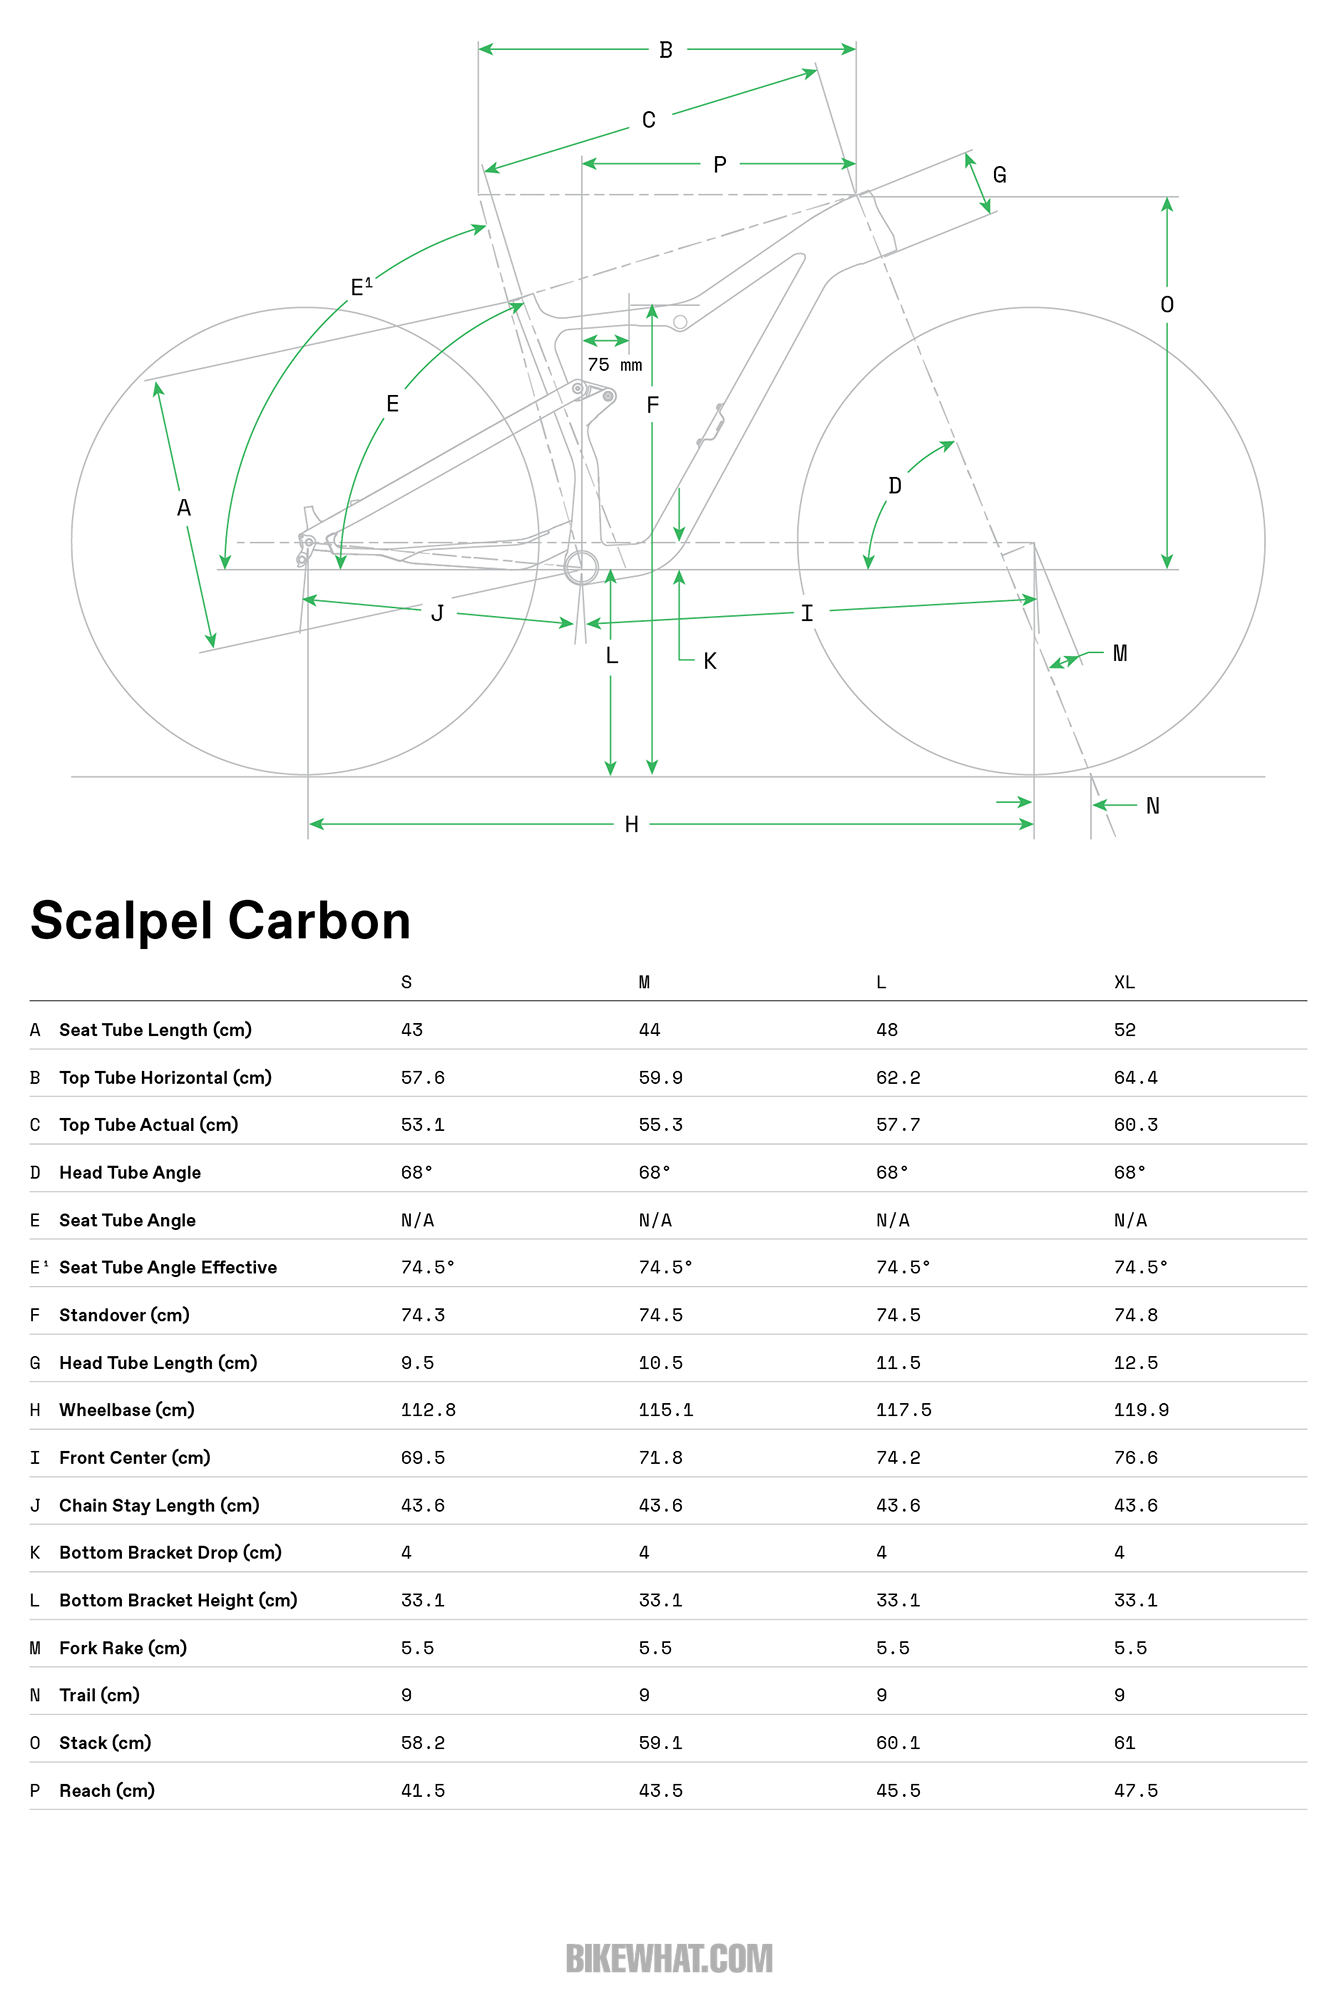 gear_Cannondale_Scalpel_Carbon_Geo.png